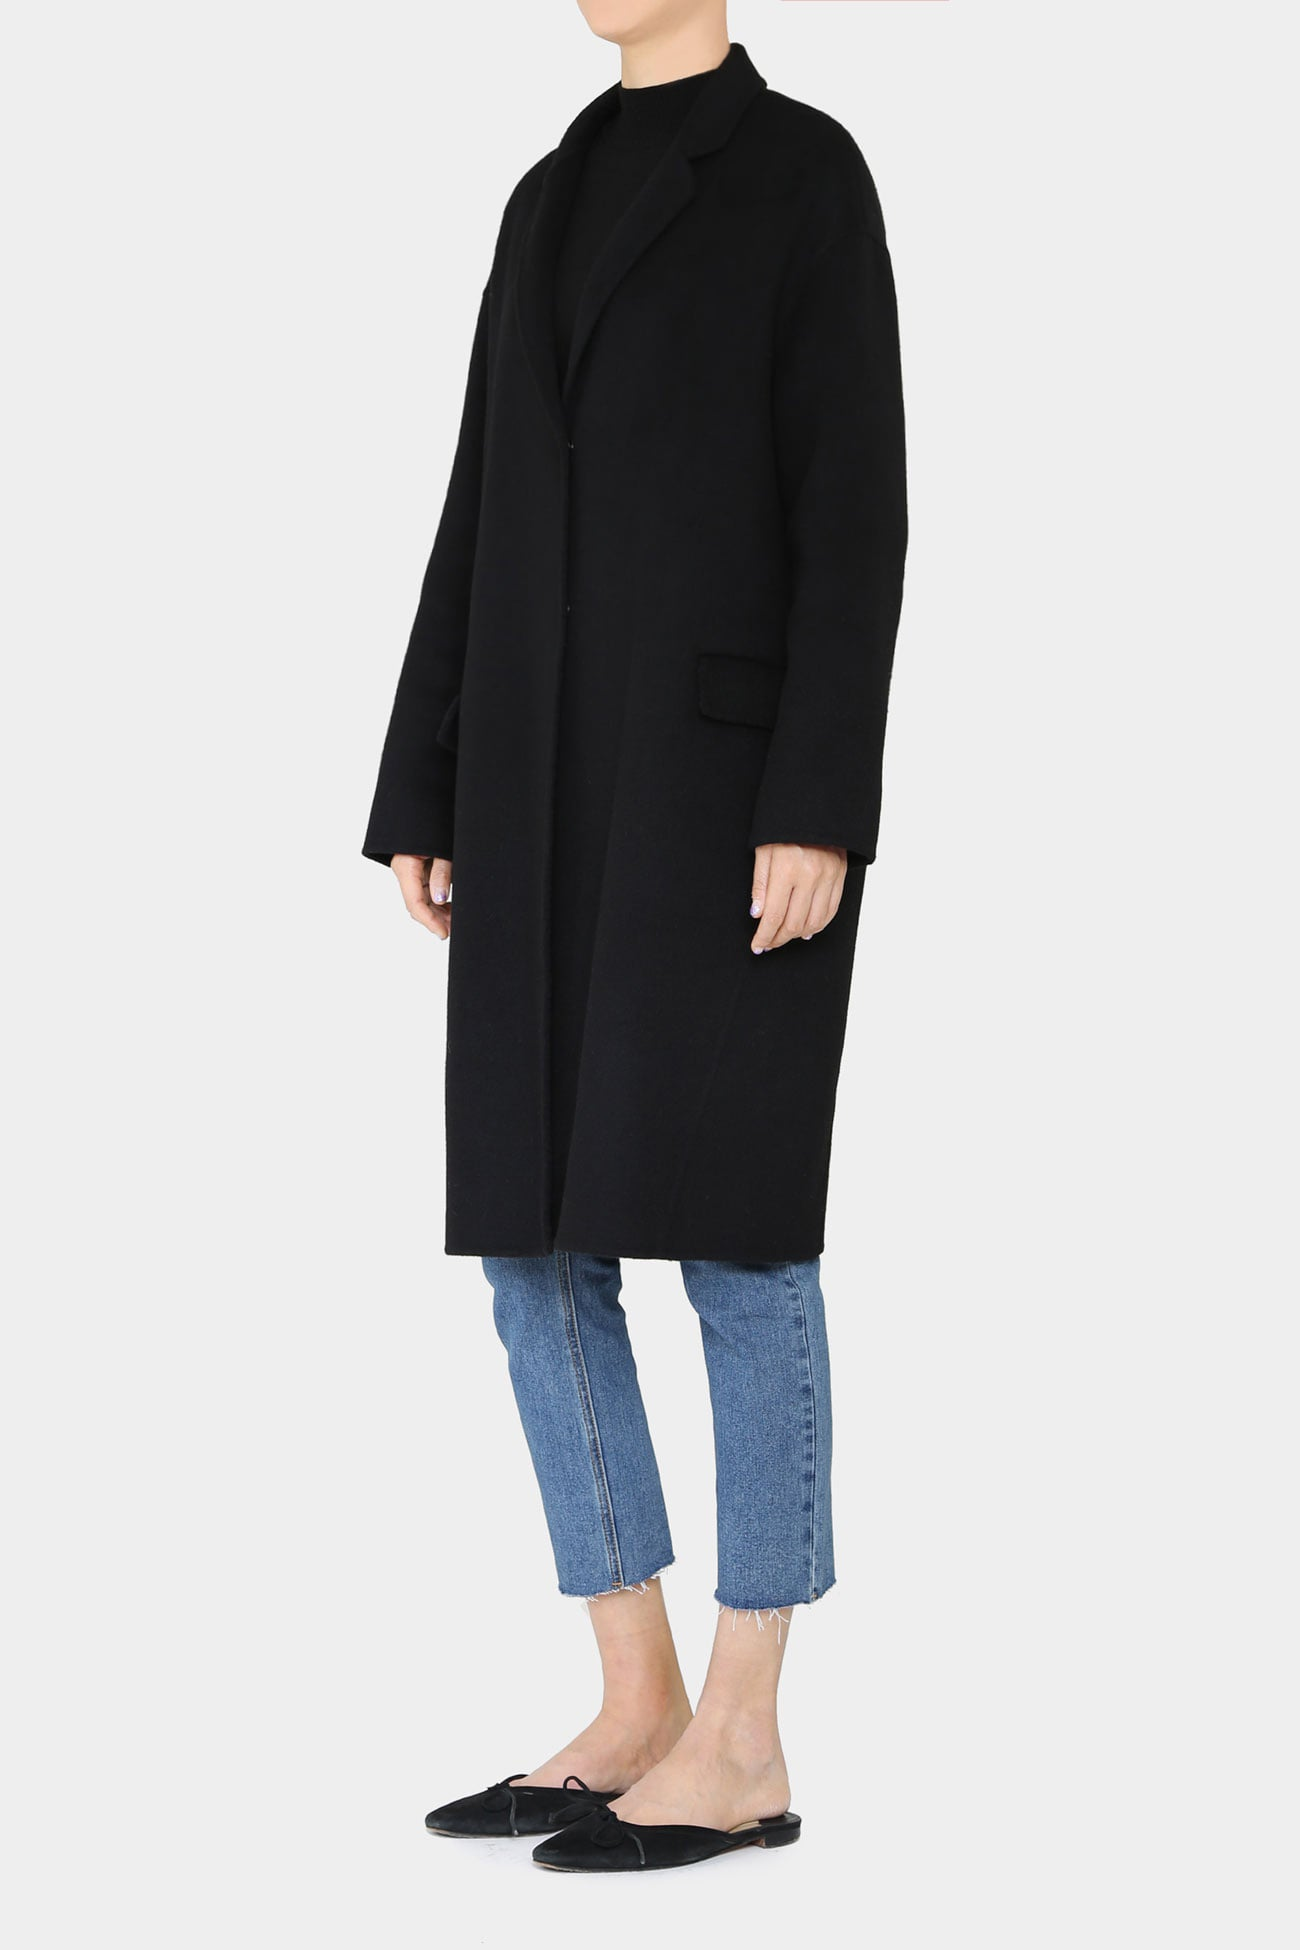 BLACK CARO HANDMADE WOOL COAT